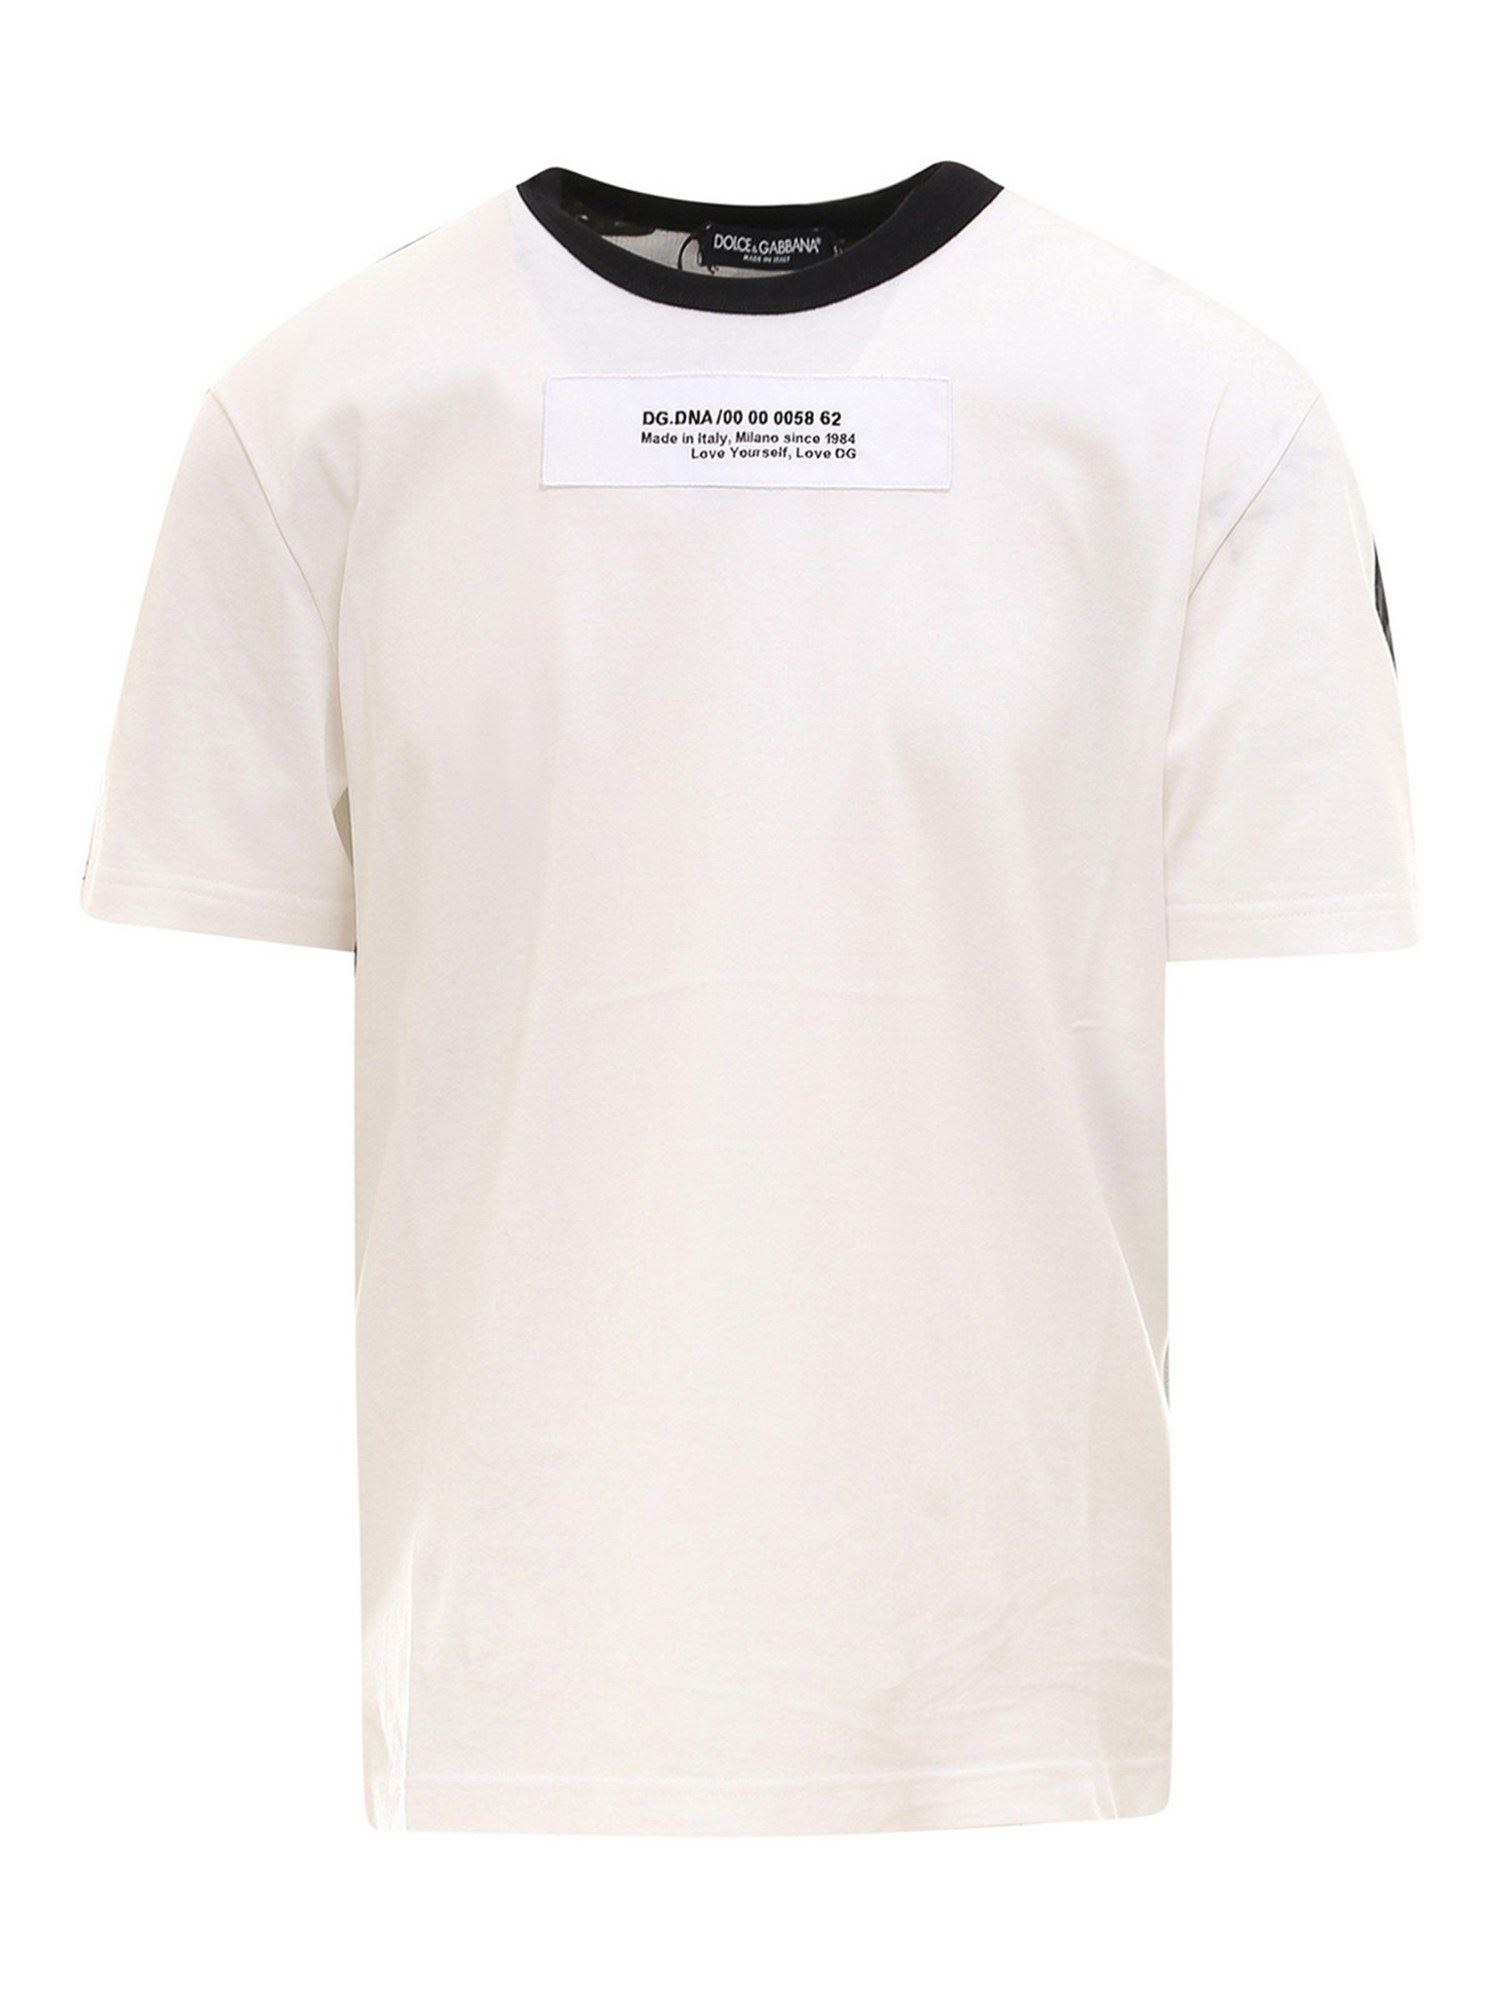 Dolce & Gabbana Cottons PRINTED T-SHIRT IN WHITE AND CAMOUFLAGE PATTERN